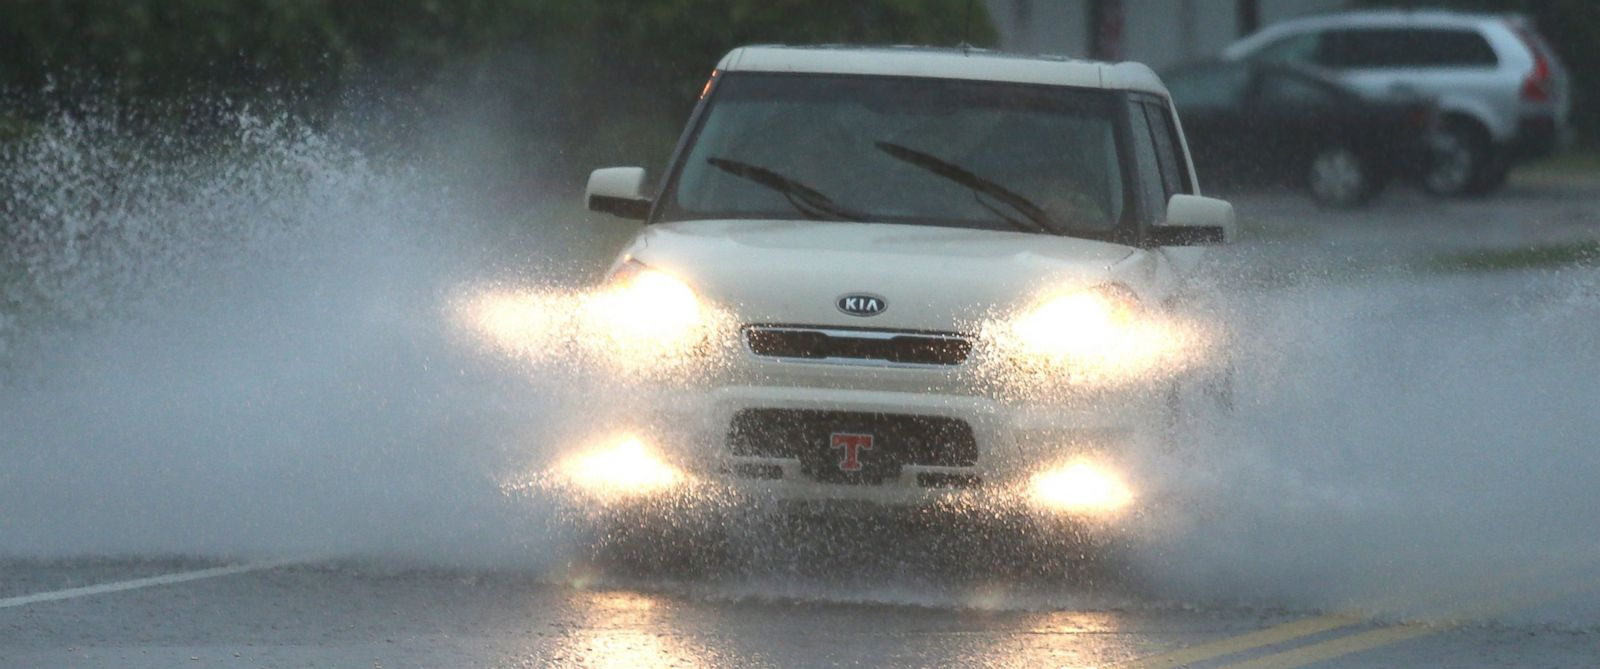 PHOTO: A vehicle drives through heavy flooding on Thomas Drive during rush hour in Panama City, Fla.